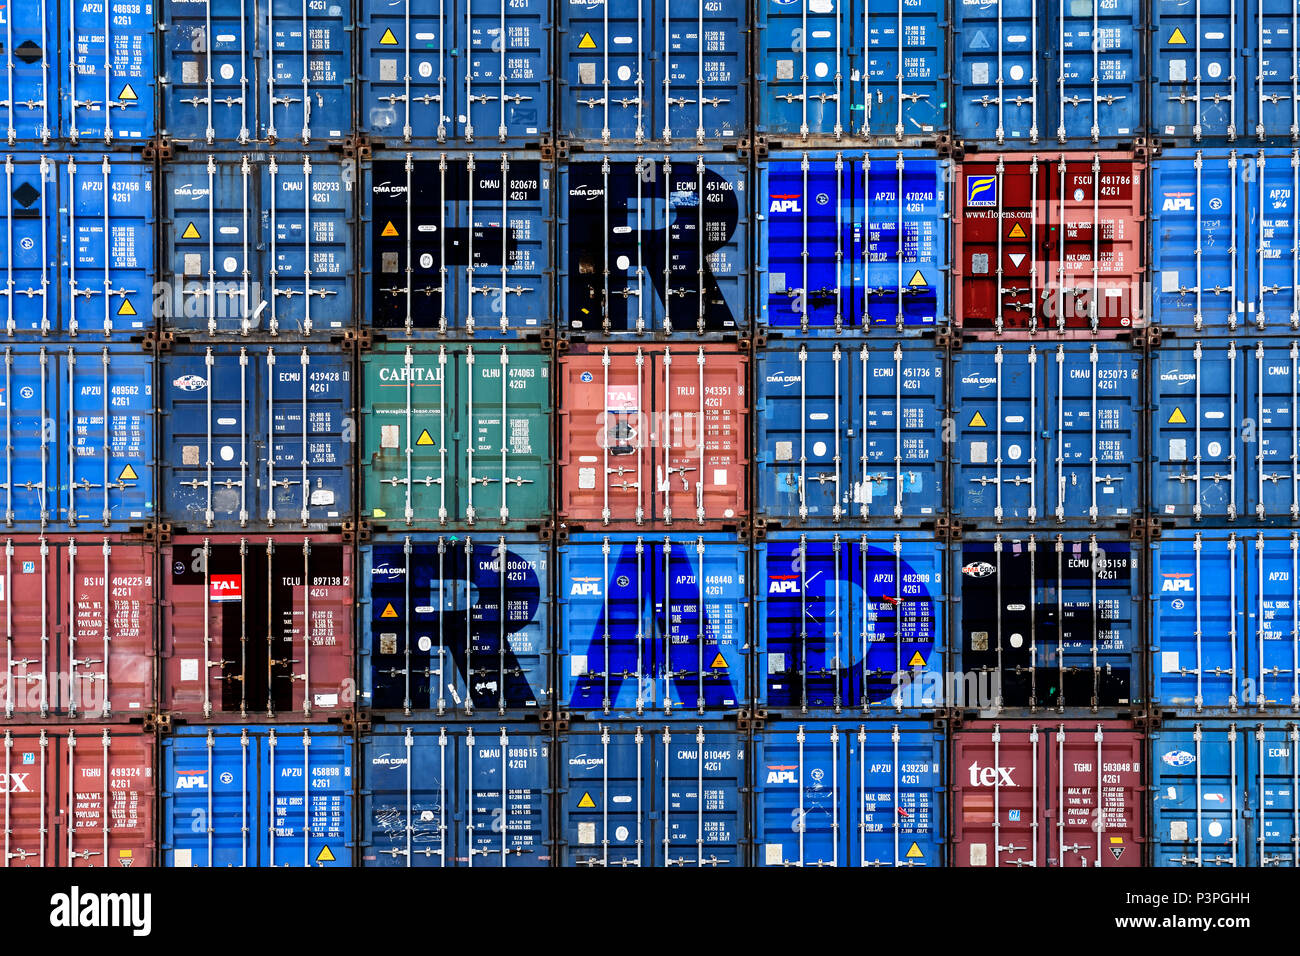 Stacked containers labeled free trade, free trade Photo icon, Gestapelte Container mit der Aufschrift Free Trade, Symbolfoto Freihandel - Stock Image